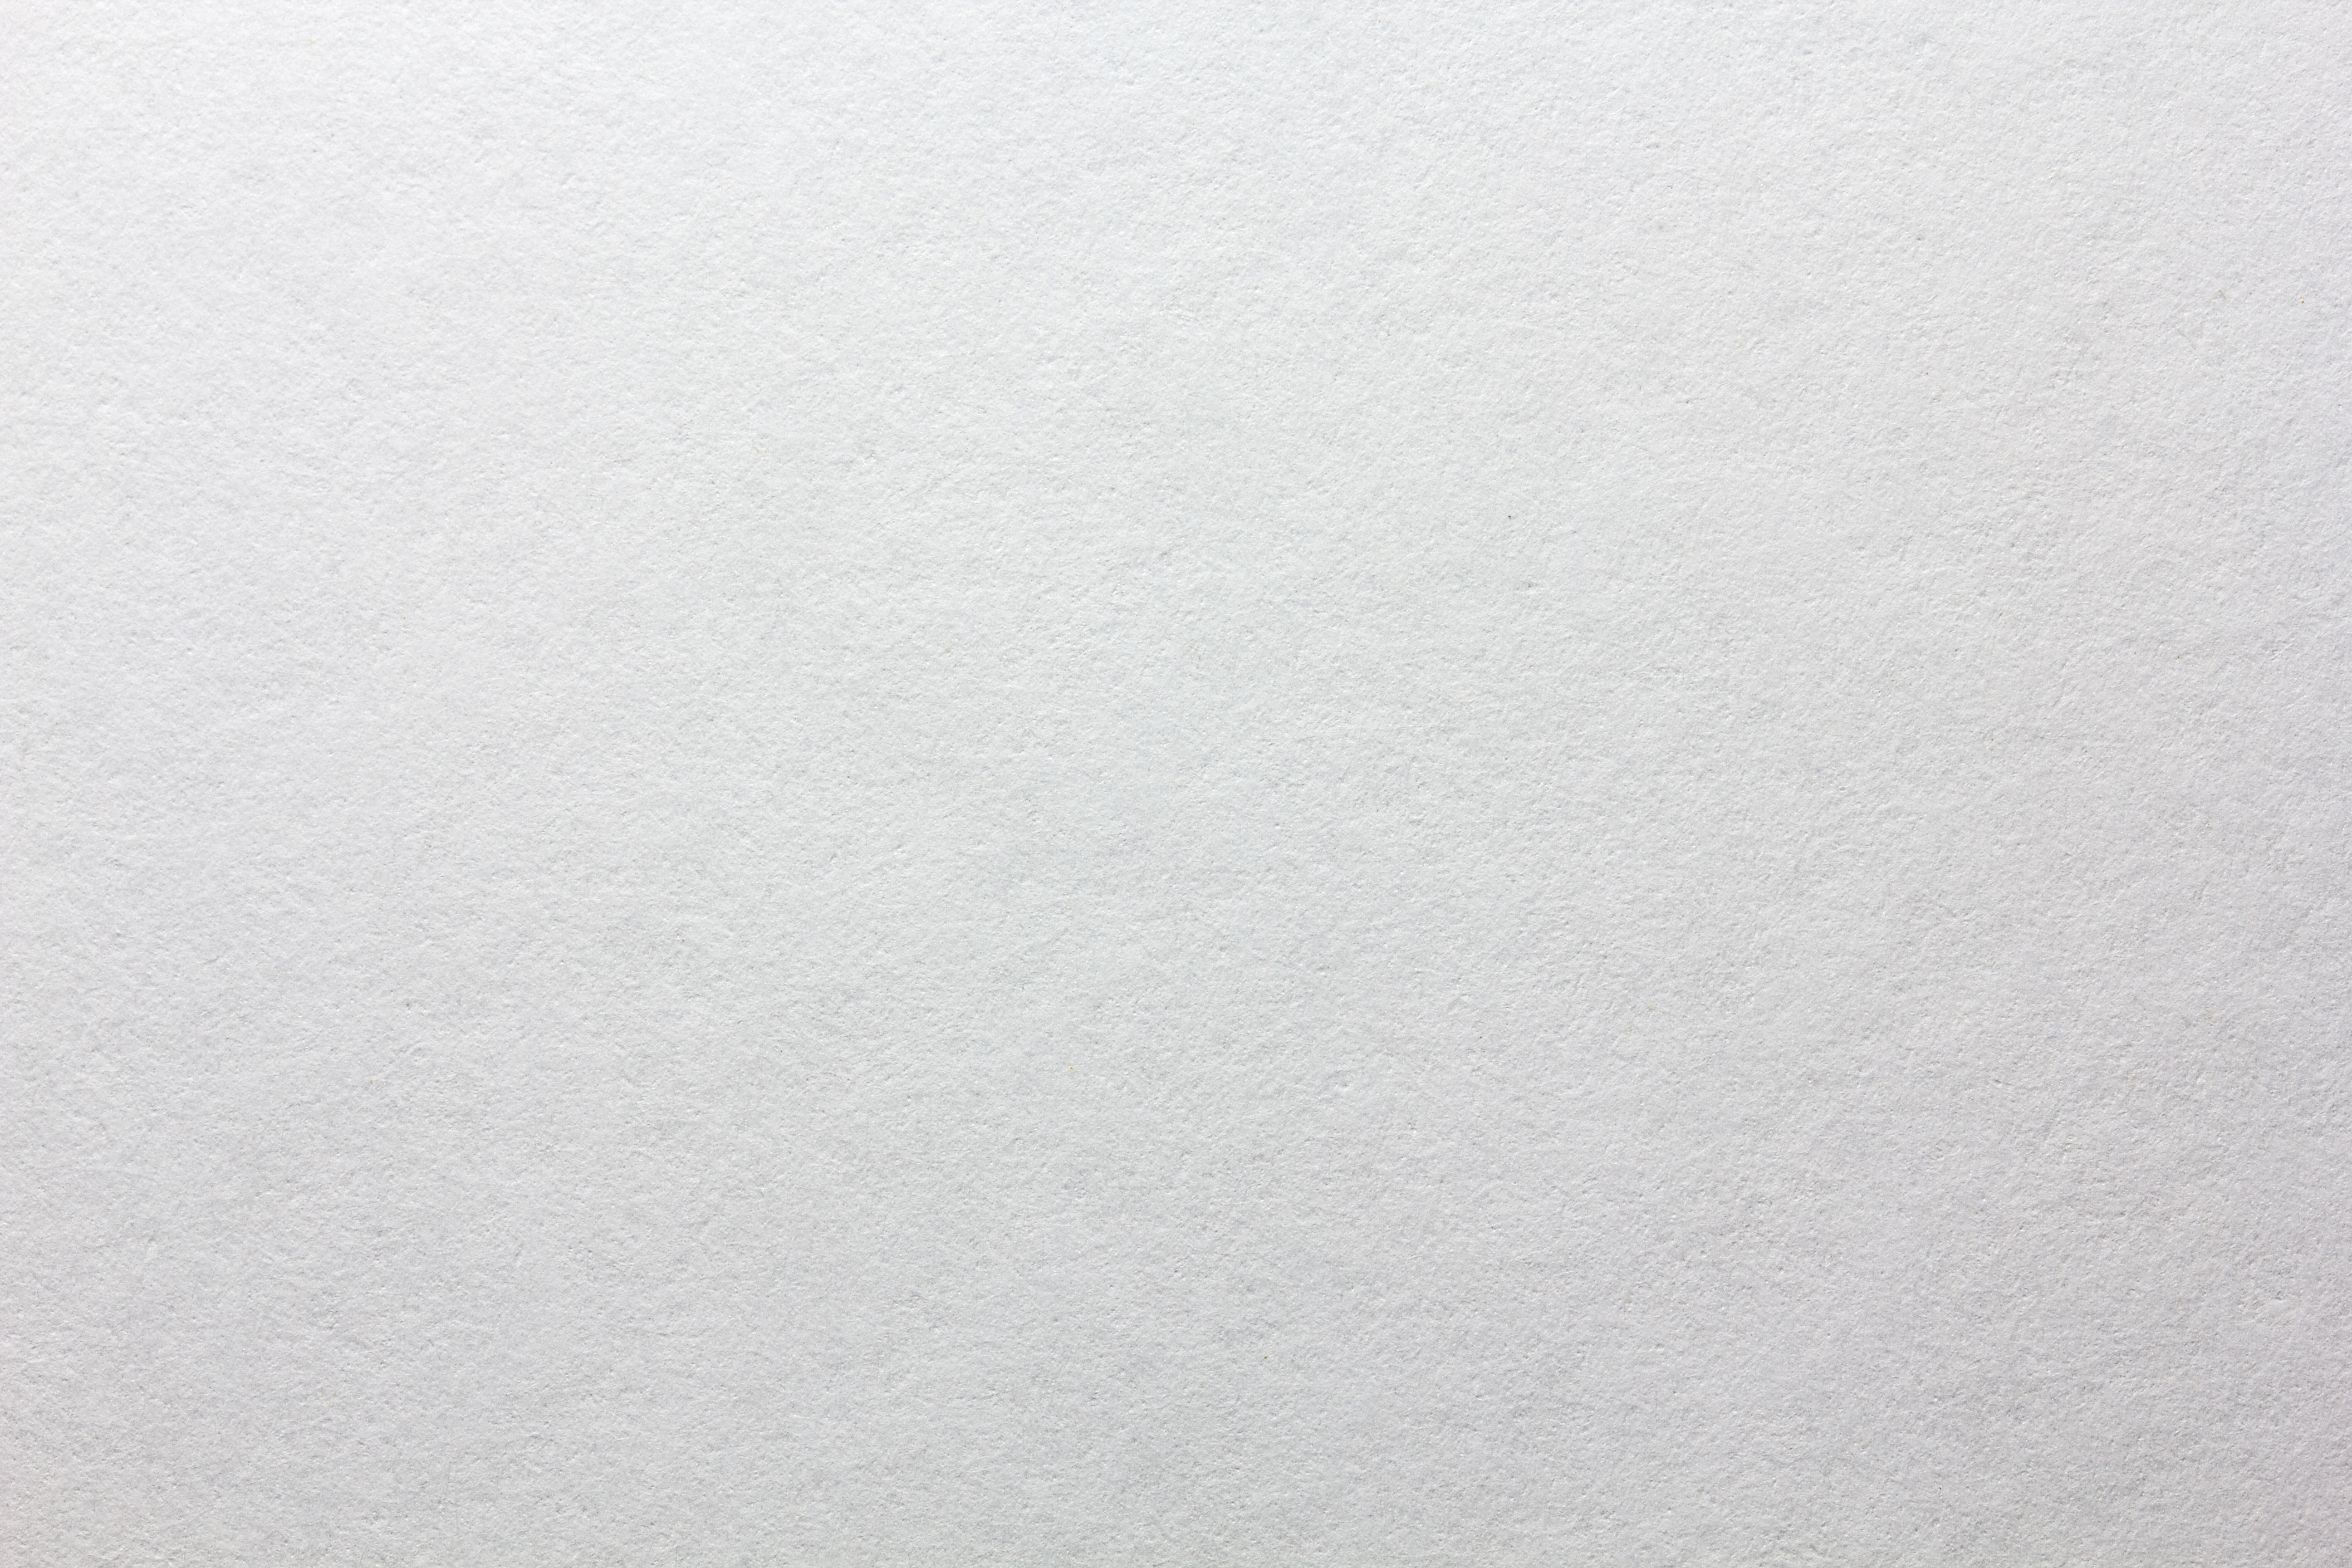 Closeup of watercolor paper texture as a background